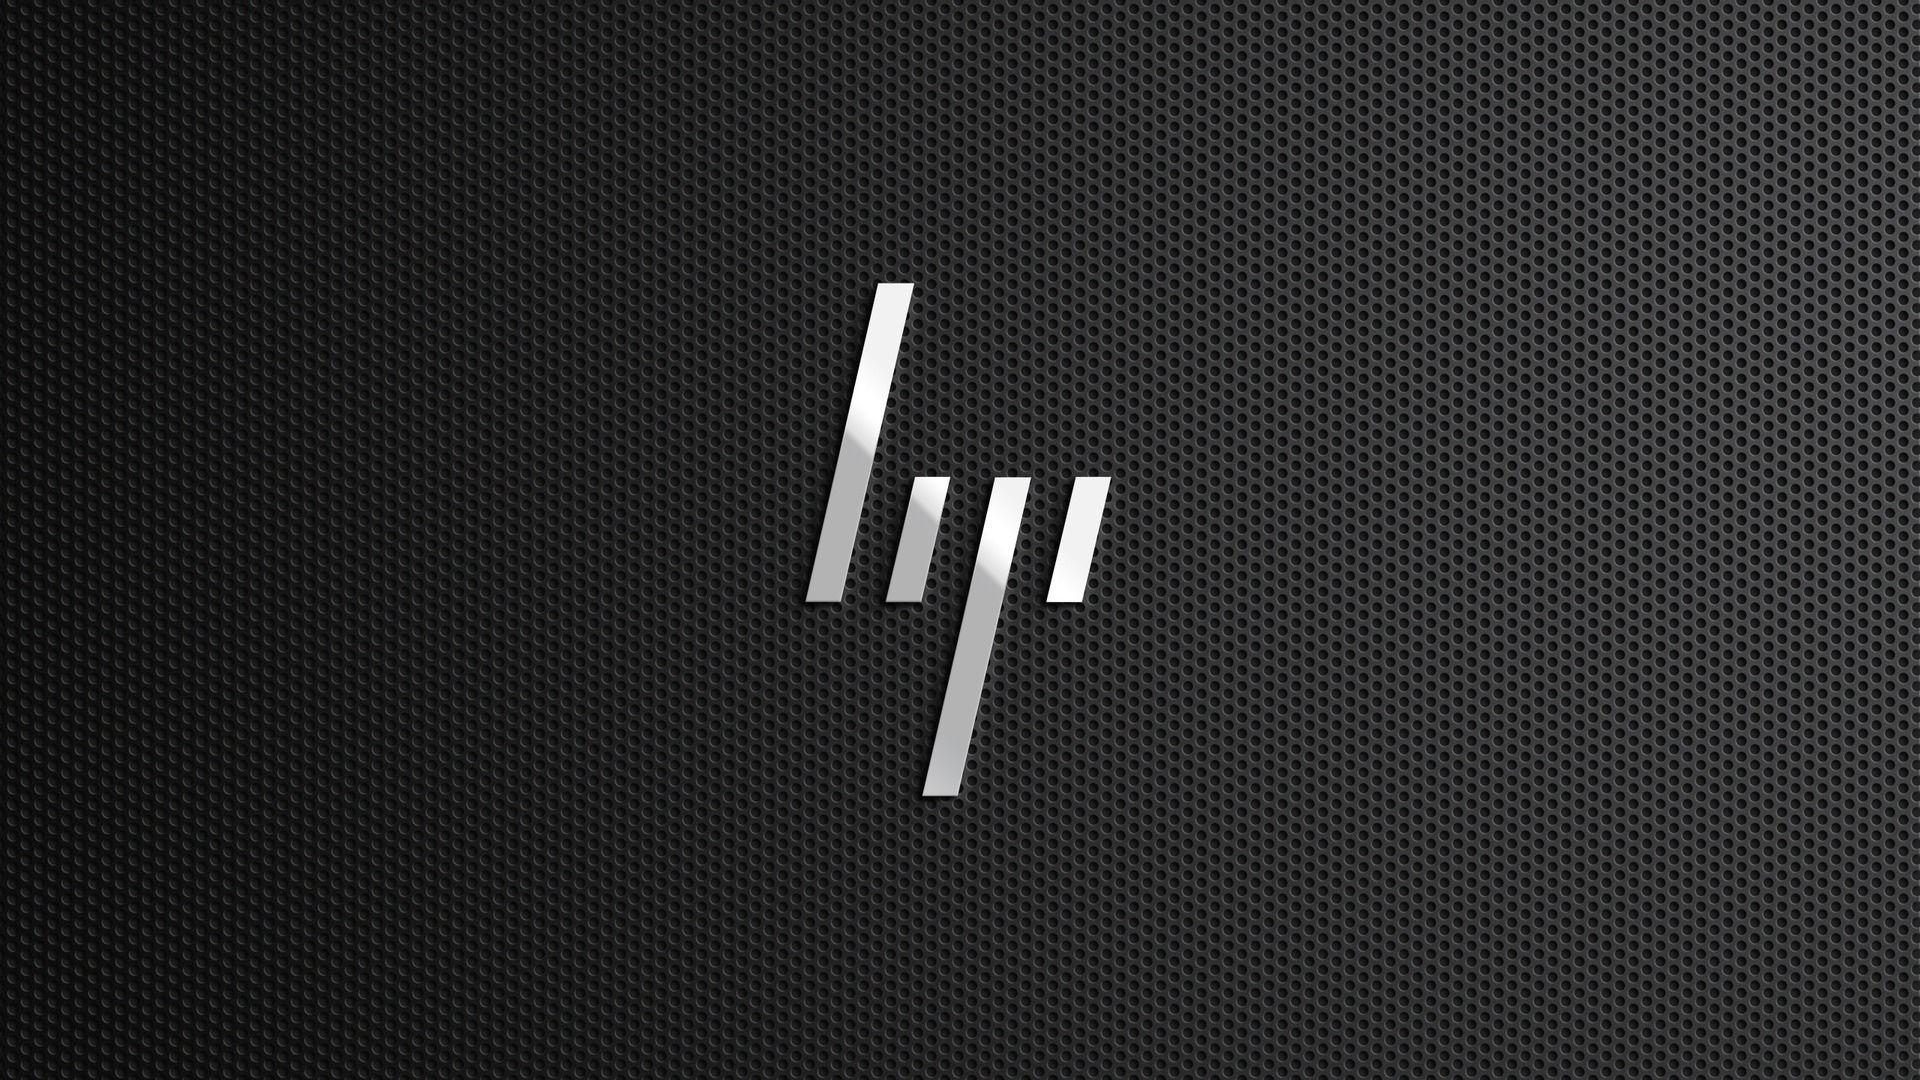 HP Wallpapers   Top HP Backgrounds   WallpaperAccess 1920x1080